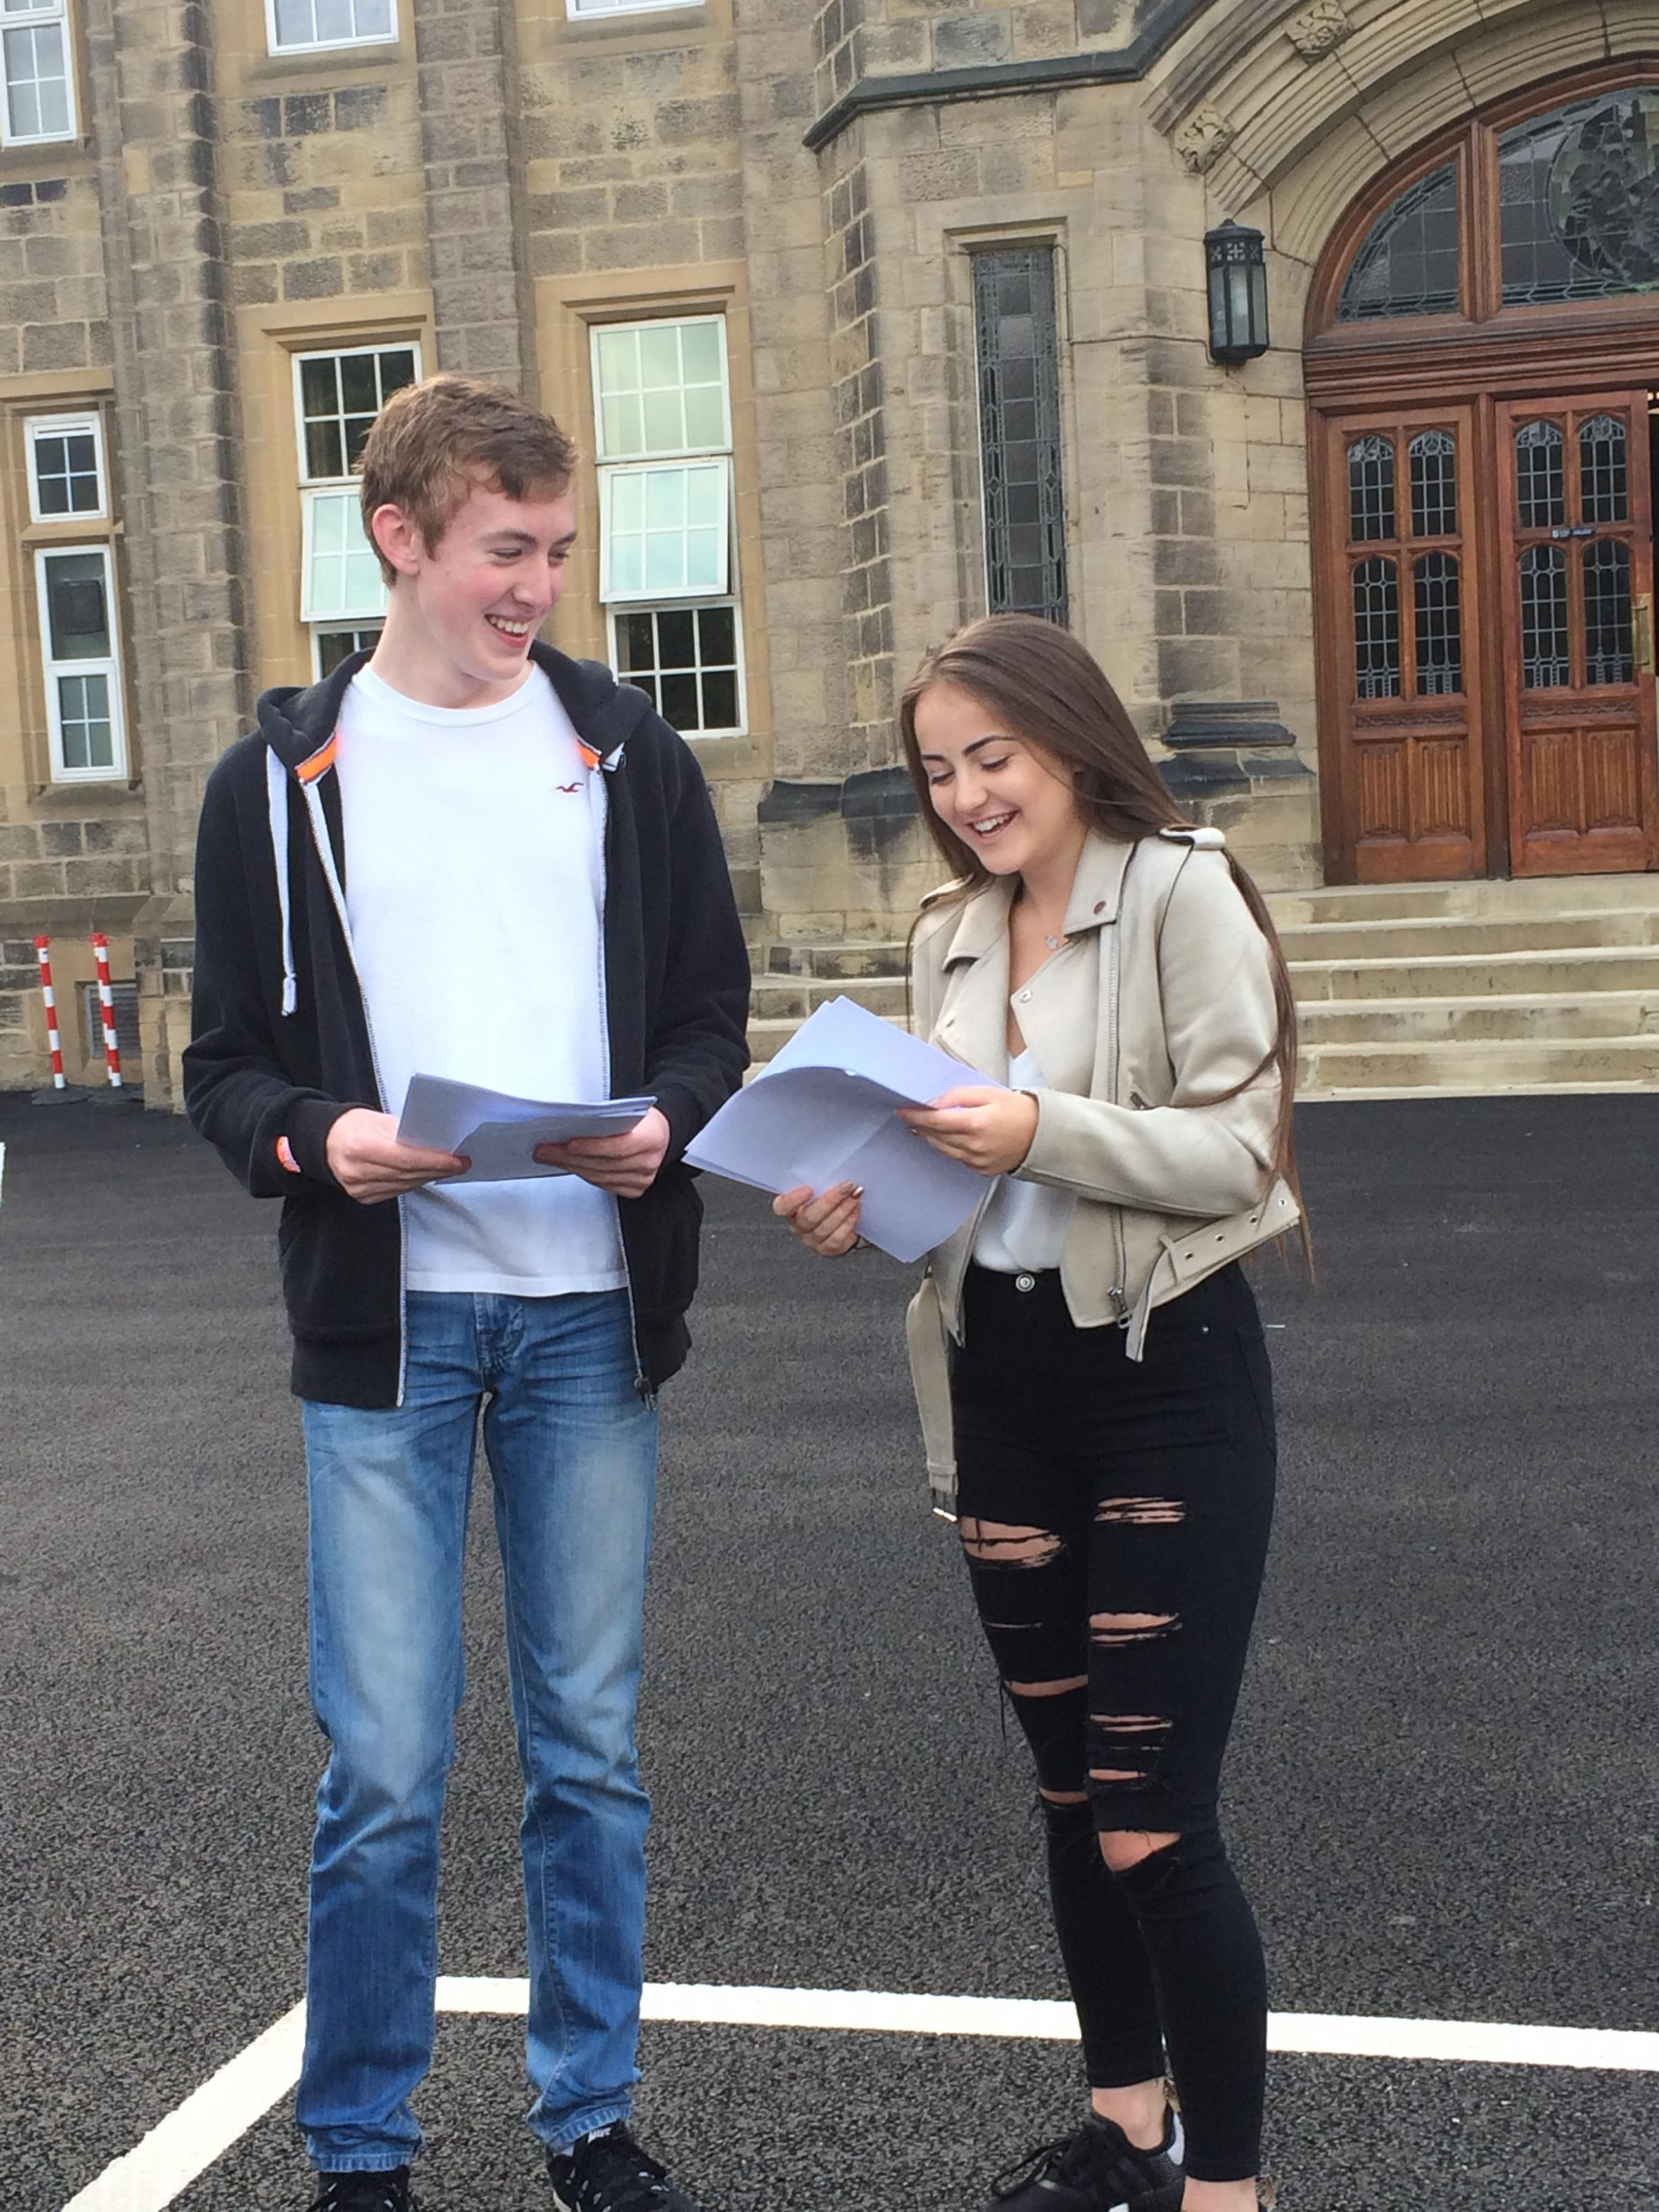 Bradford Grammar pupils Sam Watson and Alecia Hawksworth celebrate their results. Sam got 11 A* and Alecia got 10A*.